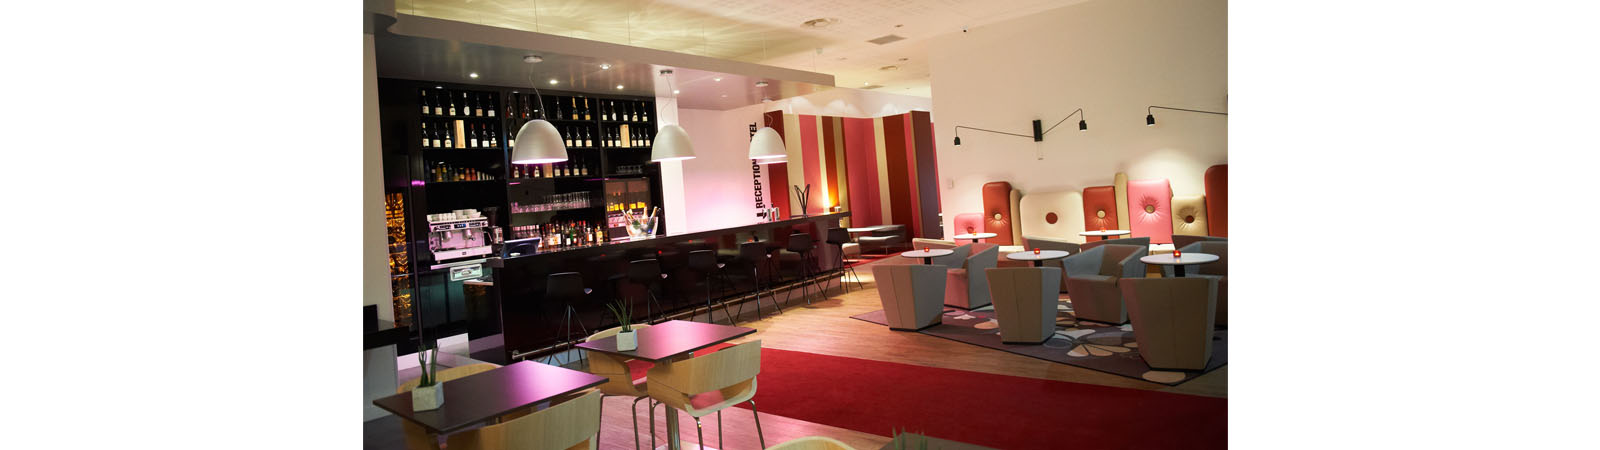 Hotel-bar-mercure-cholet